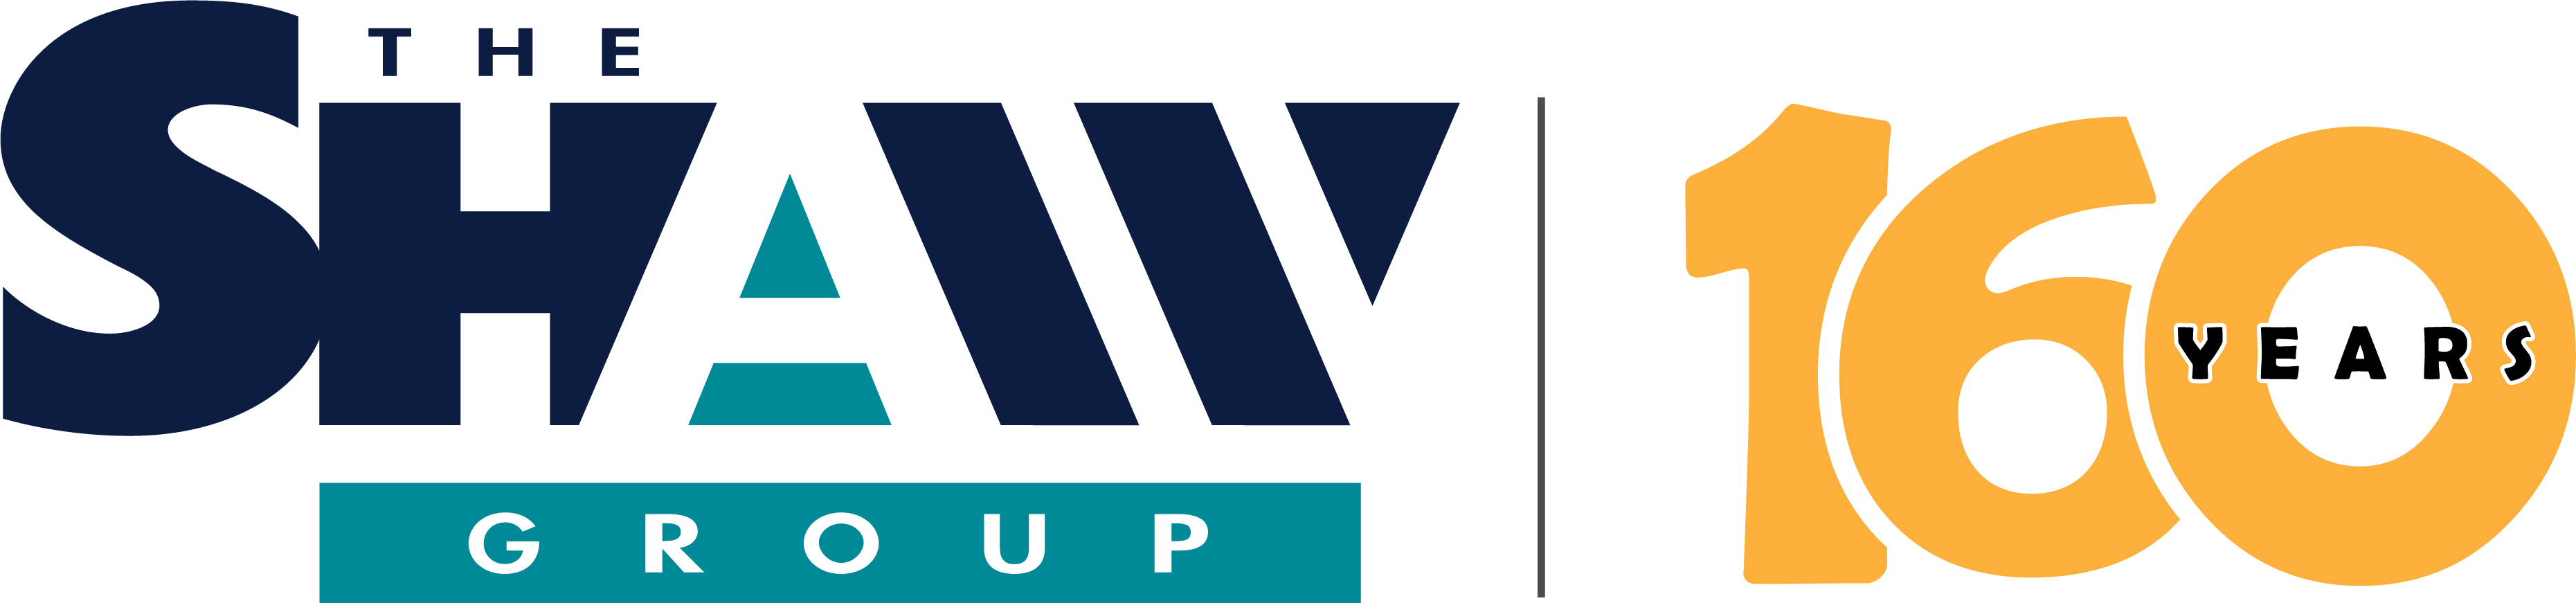 Shaw Group 160 Logo